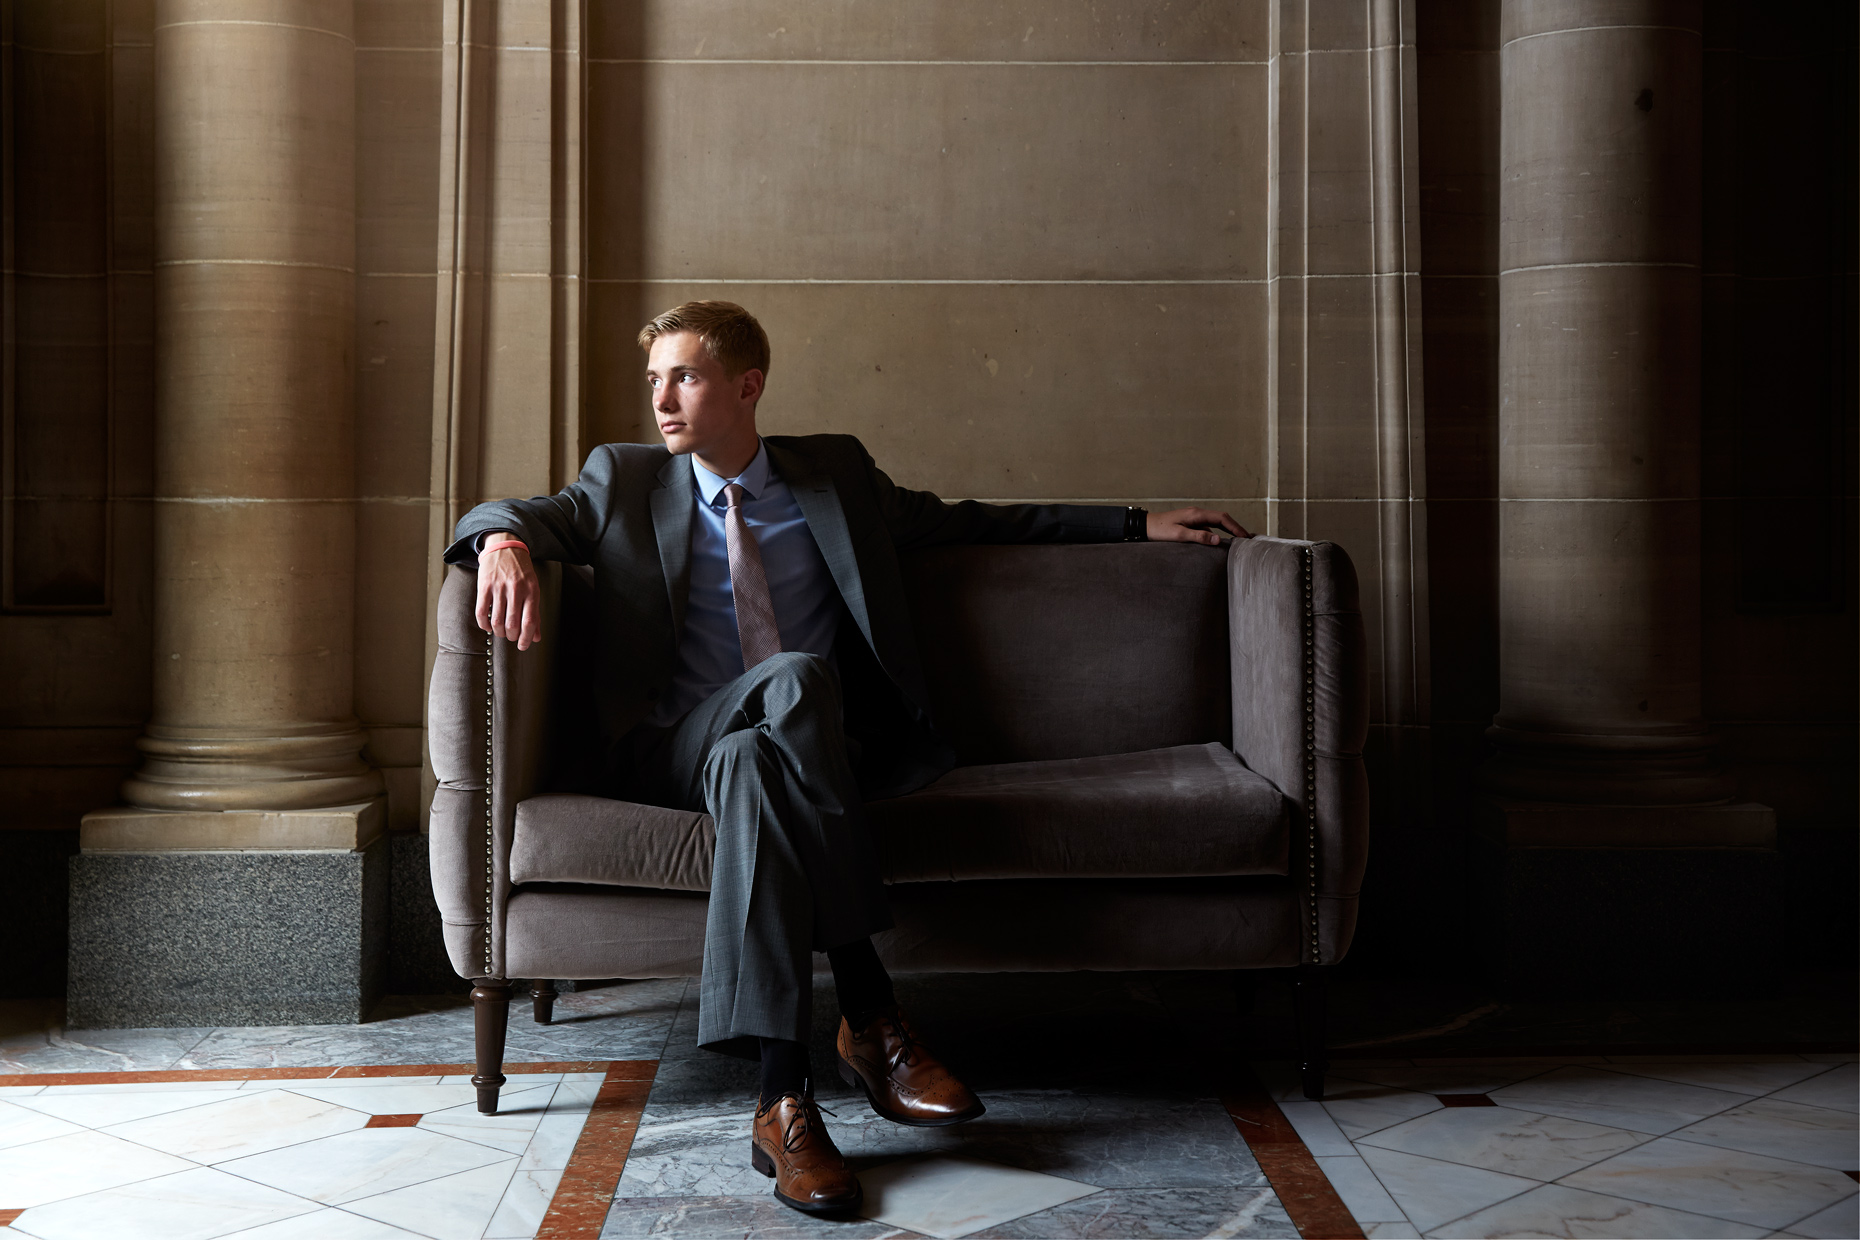 Portrait Photography Derek Israelsen Couch Business Man